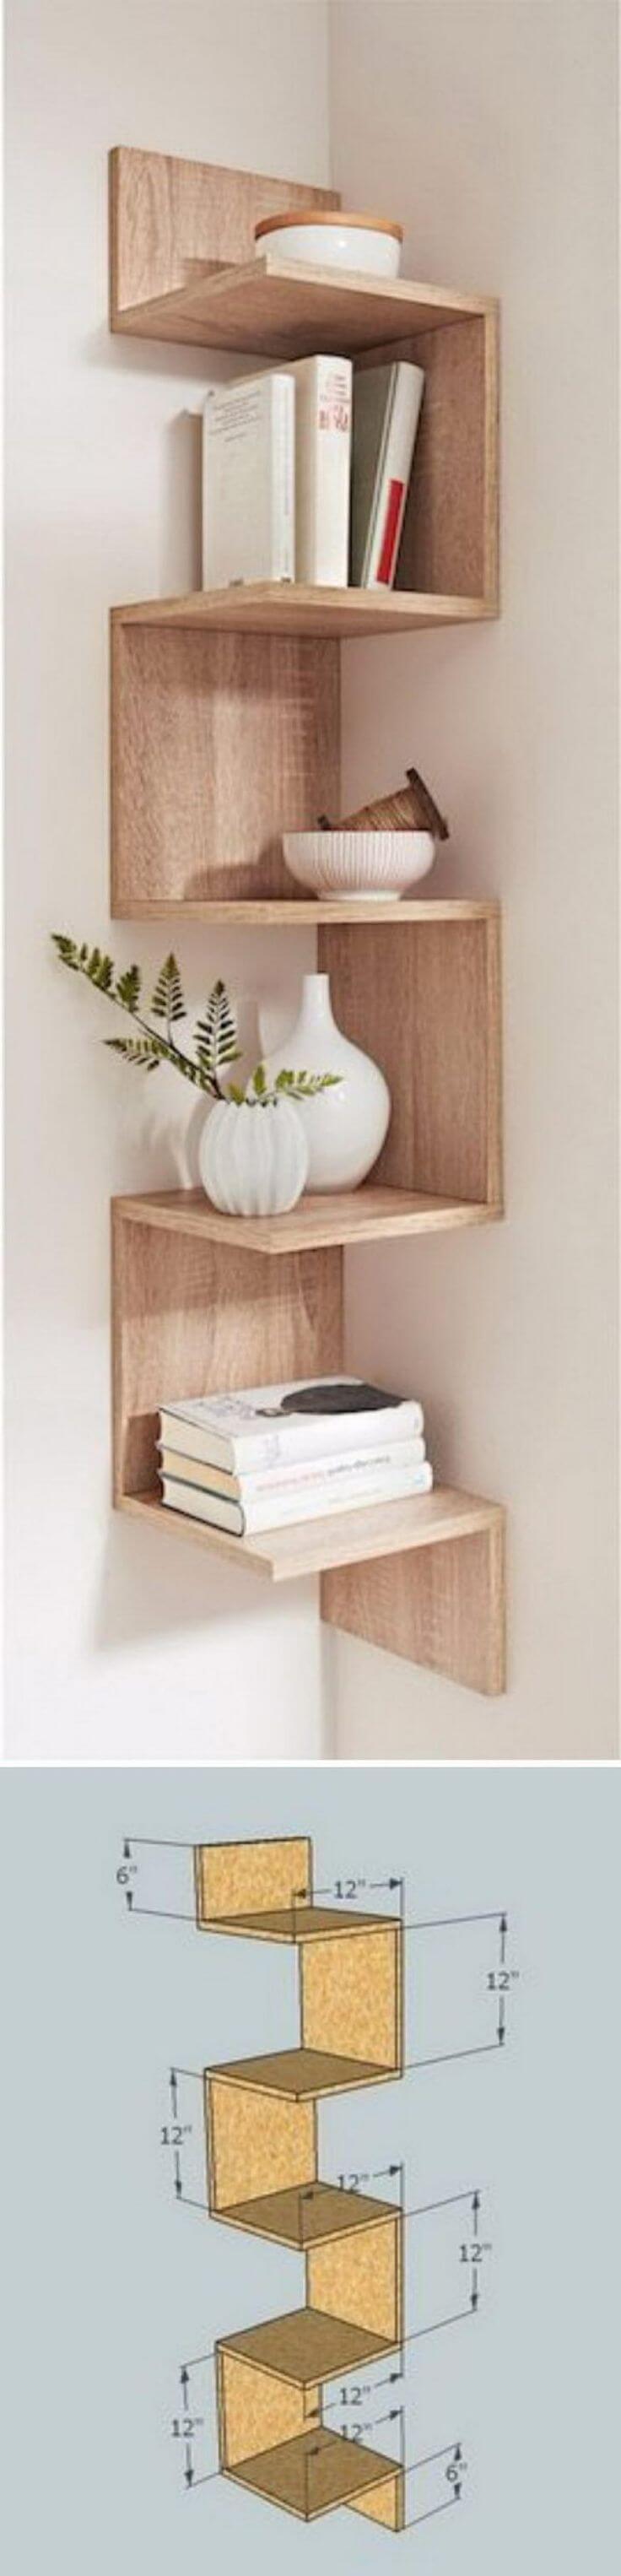 32 a unique corner zigzag shelf - Wood Craft Ideas